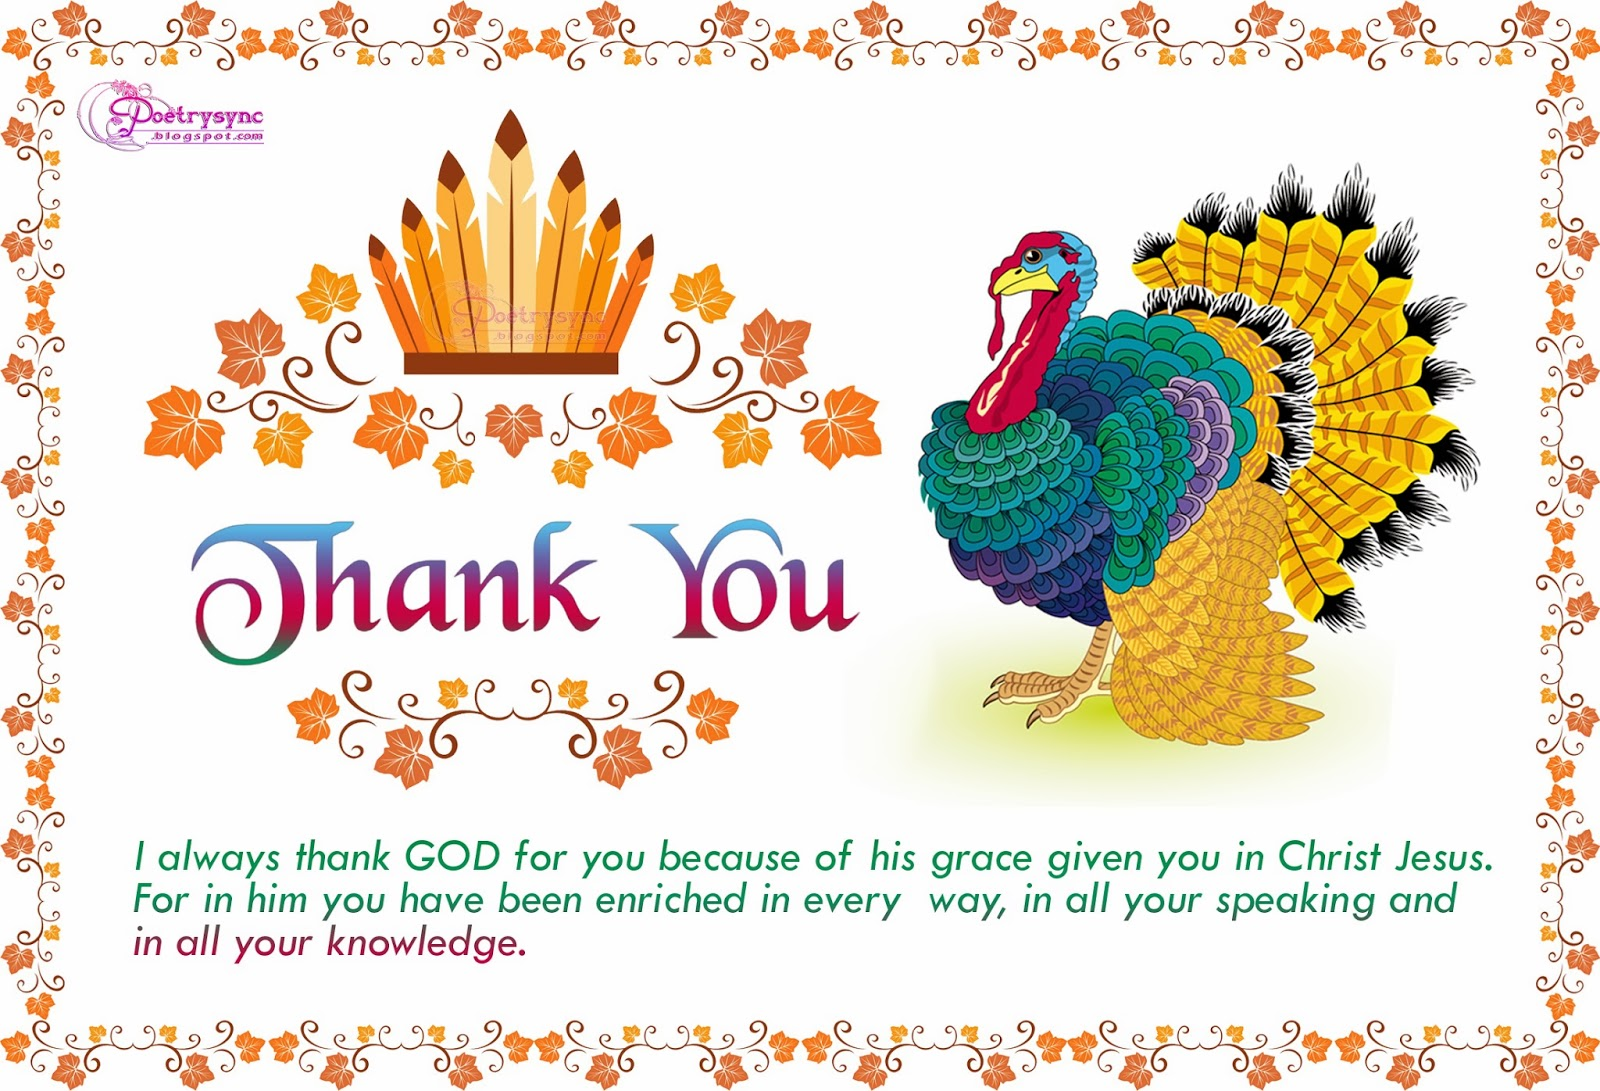 Thank you messages sms for new year wishes for family thanksgiving day wishes quotes sayings messages sms greetings thanksgiving day wishes quotes sayings messages sms greetings cards pictures 10 thanksgiving kristyandbryce Gallery